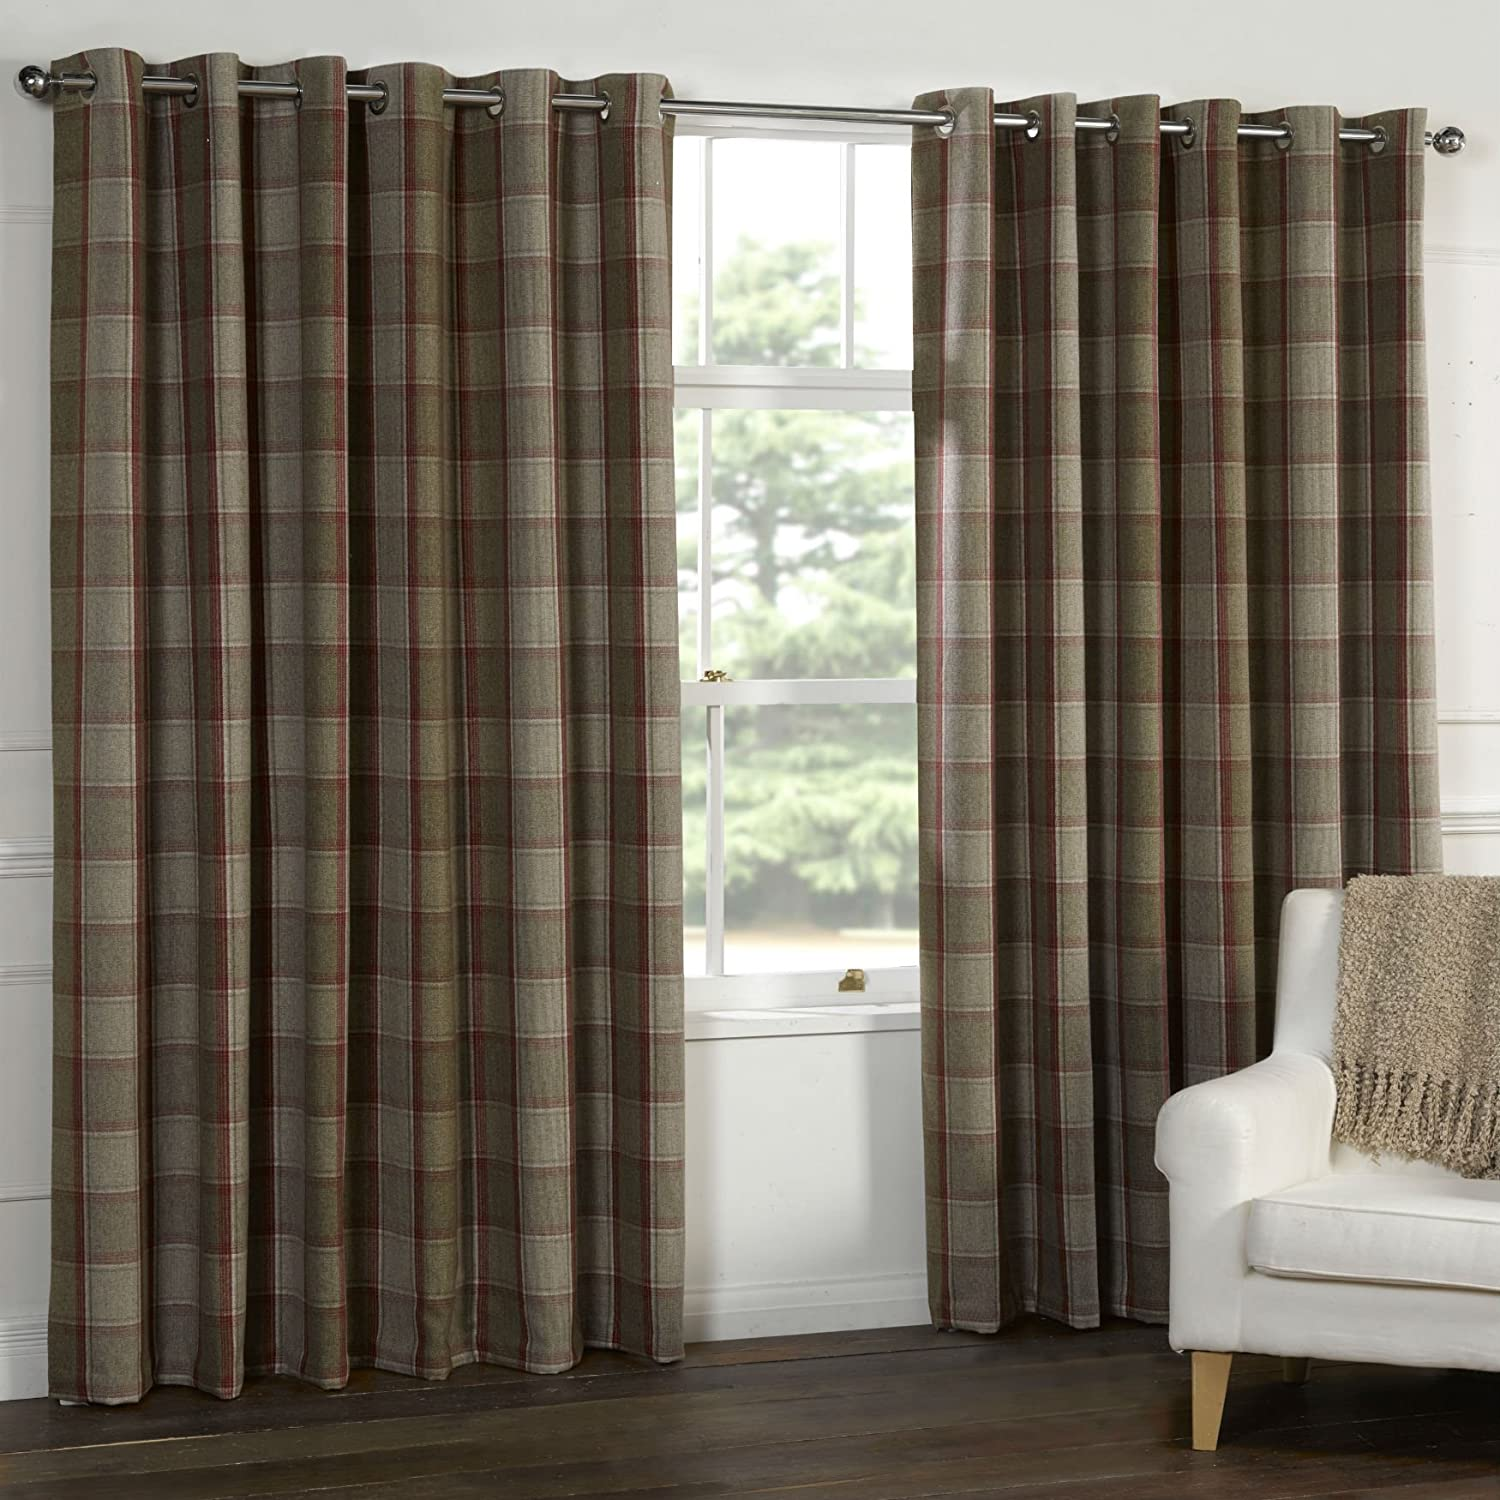 Blackout Bedroom Curtains Argos